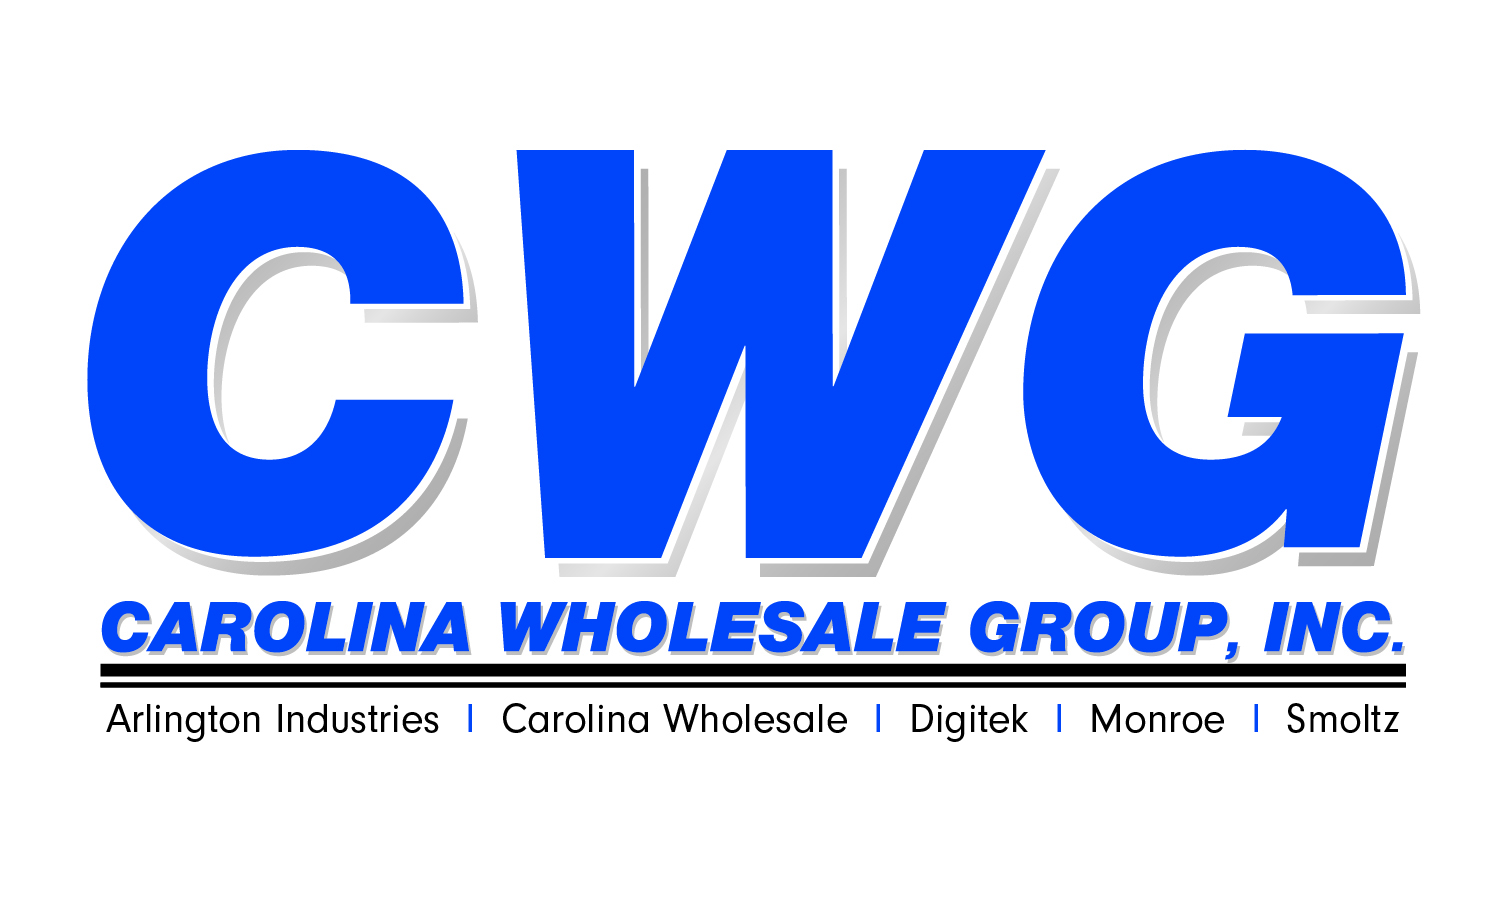 Carolina Wholesale Group